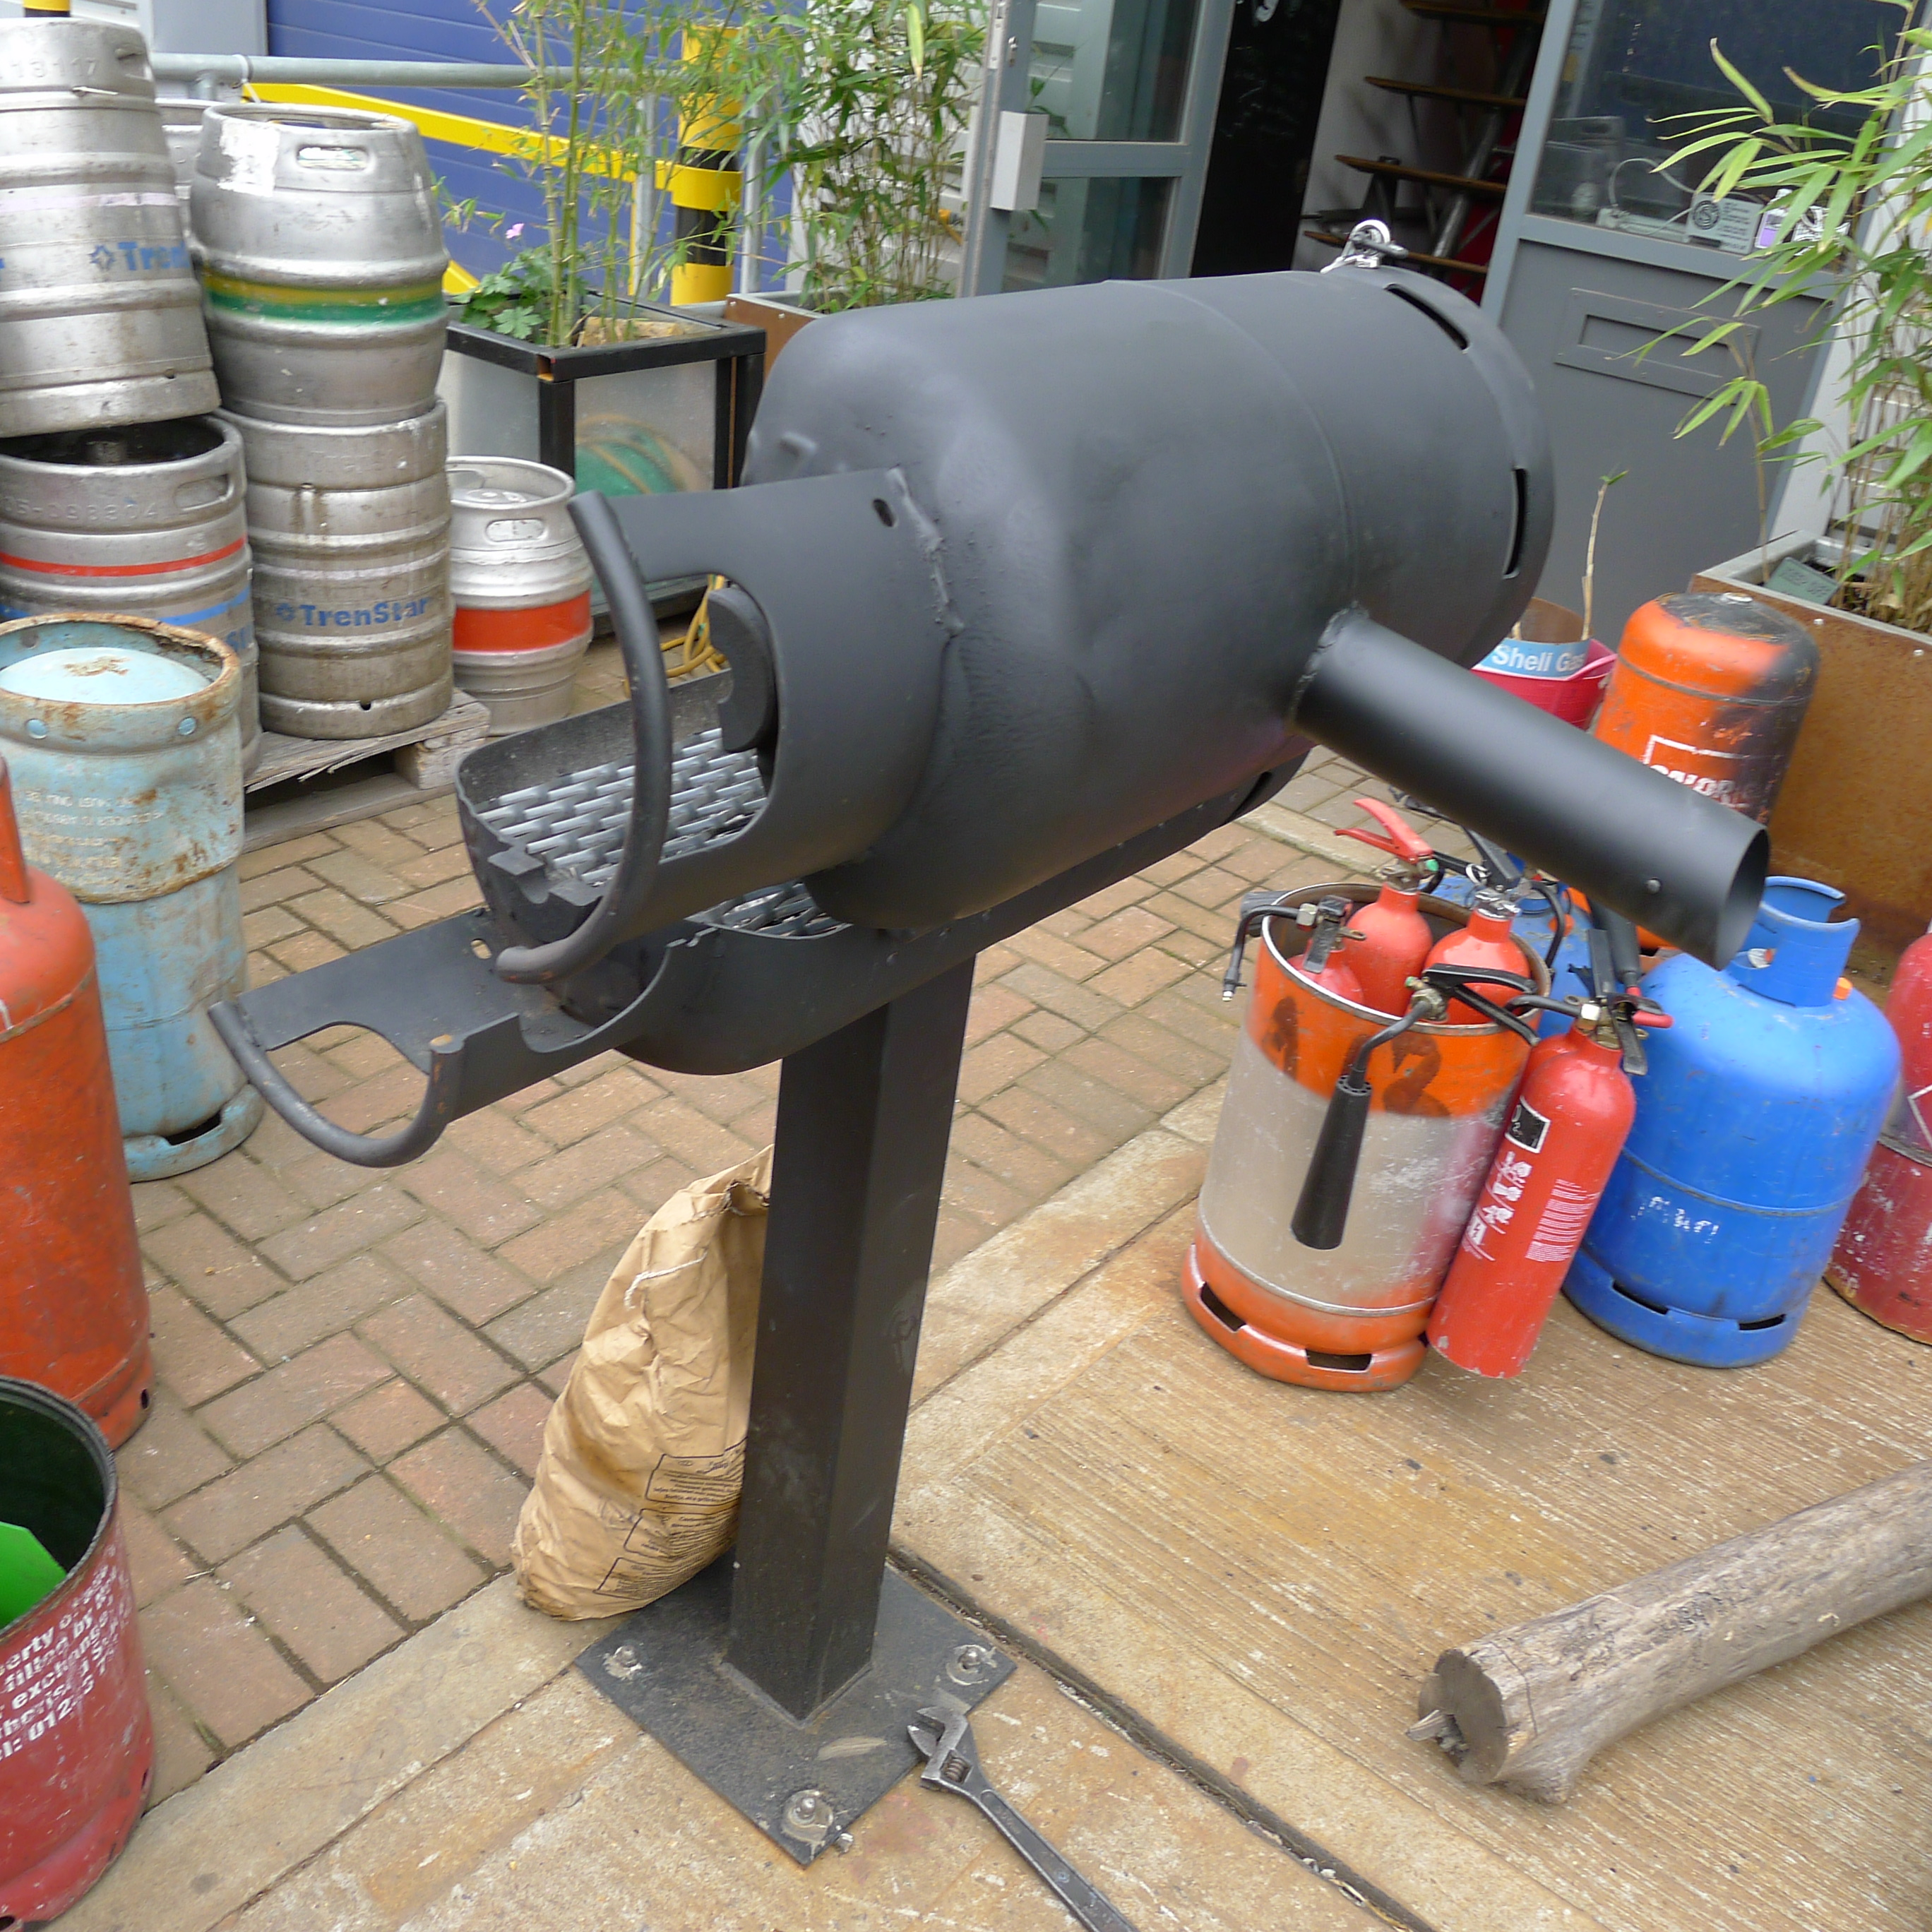 Gas Bottle Bbq Furniture And Metalwork Built To Order